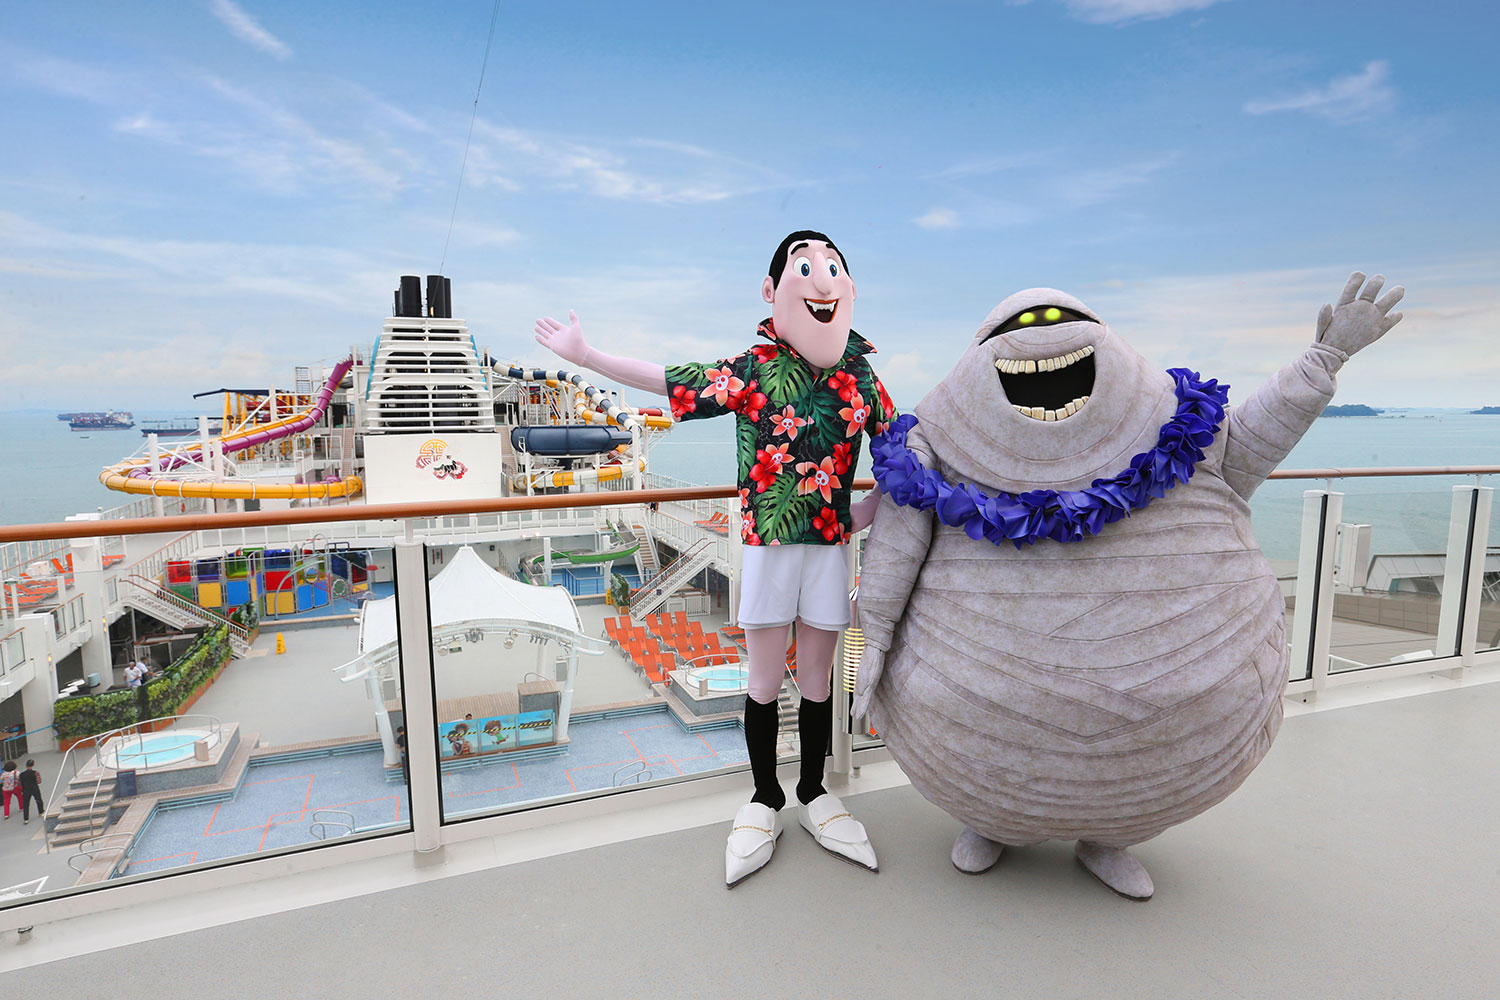 Go on a Monster Vacation with the Characters of Hotel Transylvania 3 onboard Dream Cruises